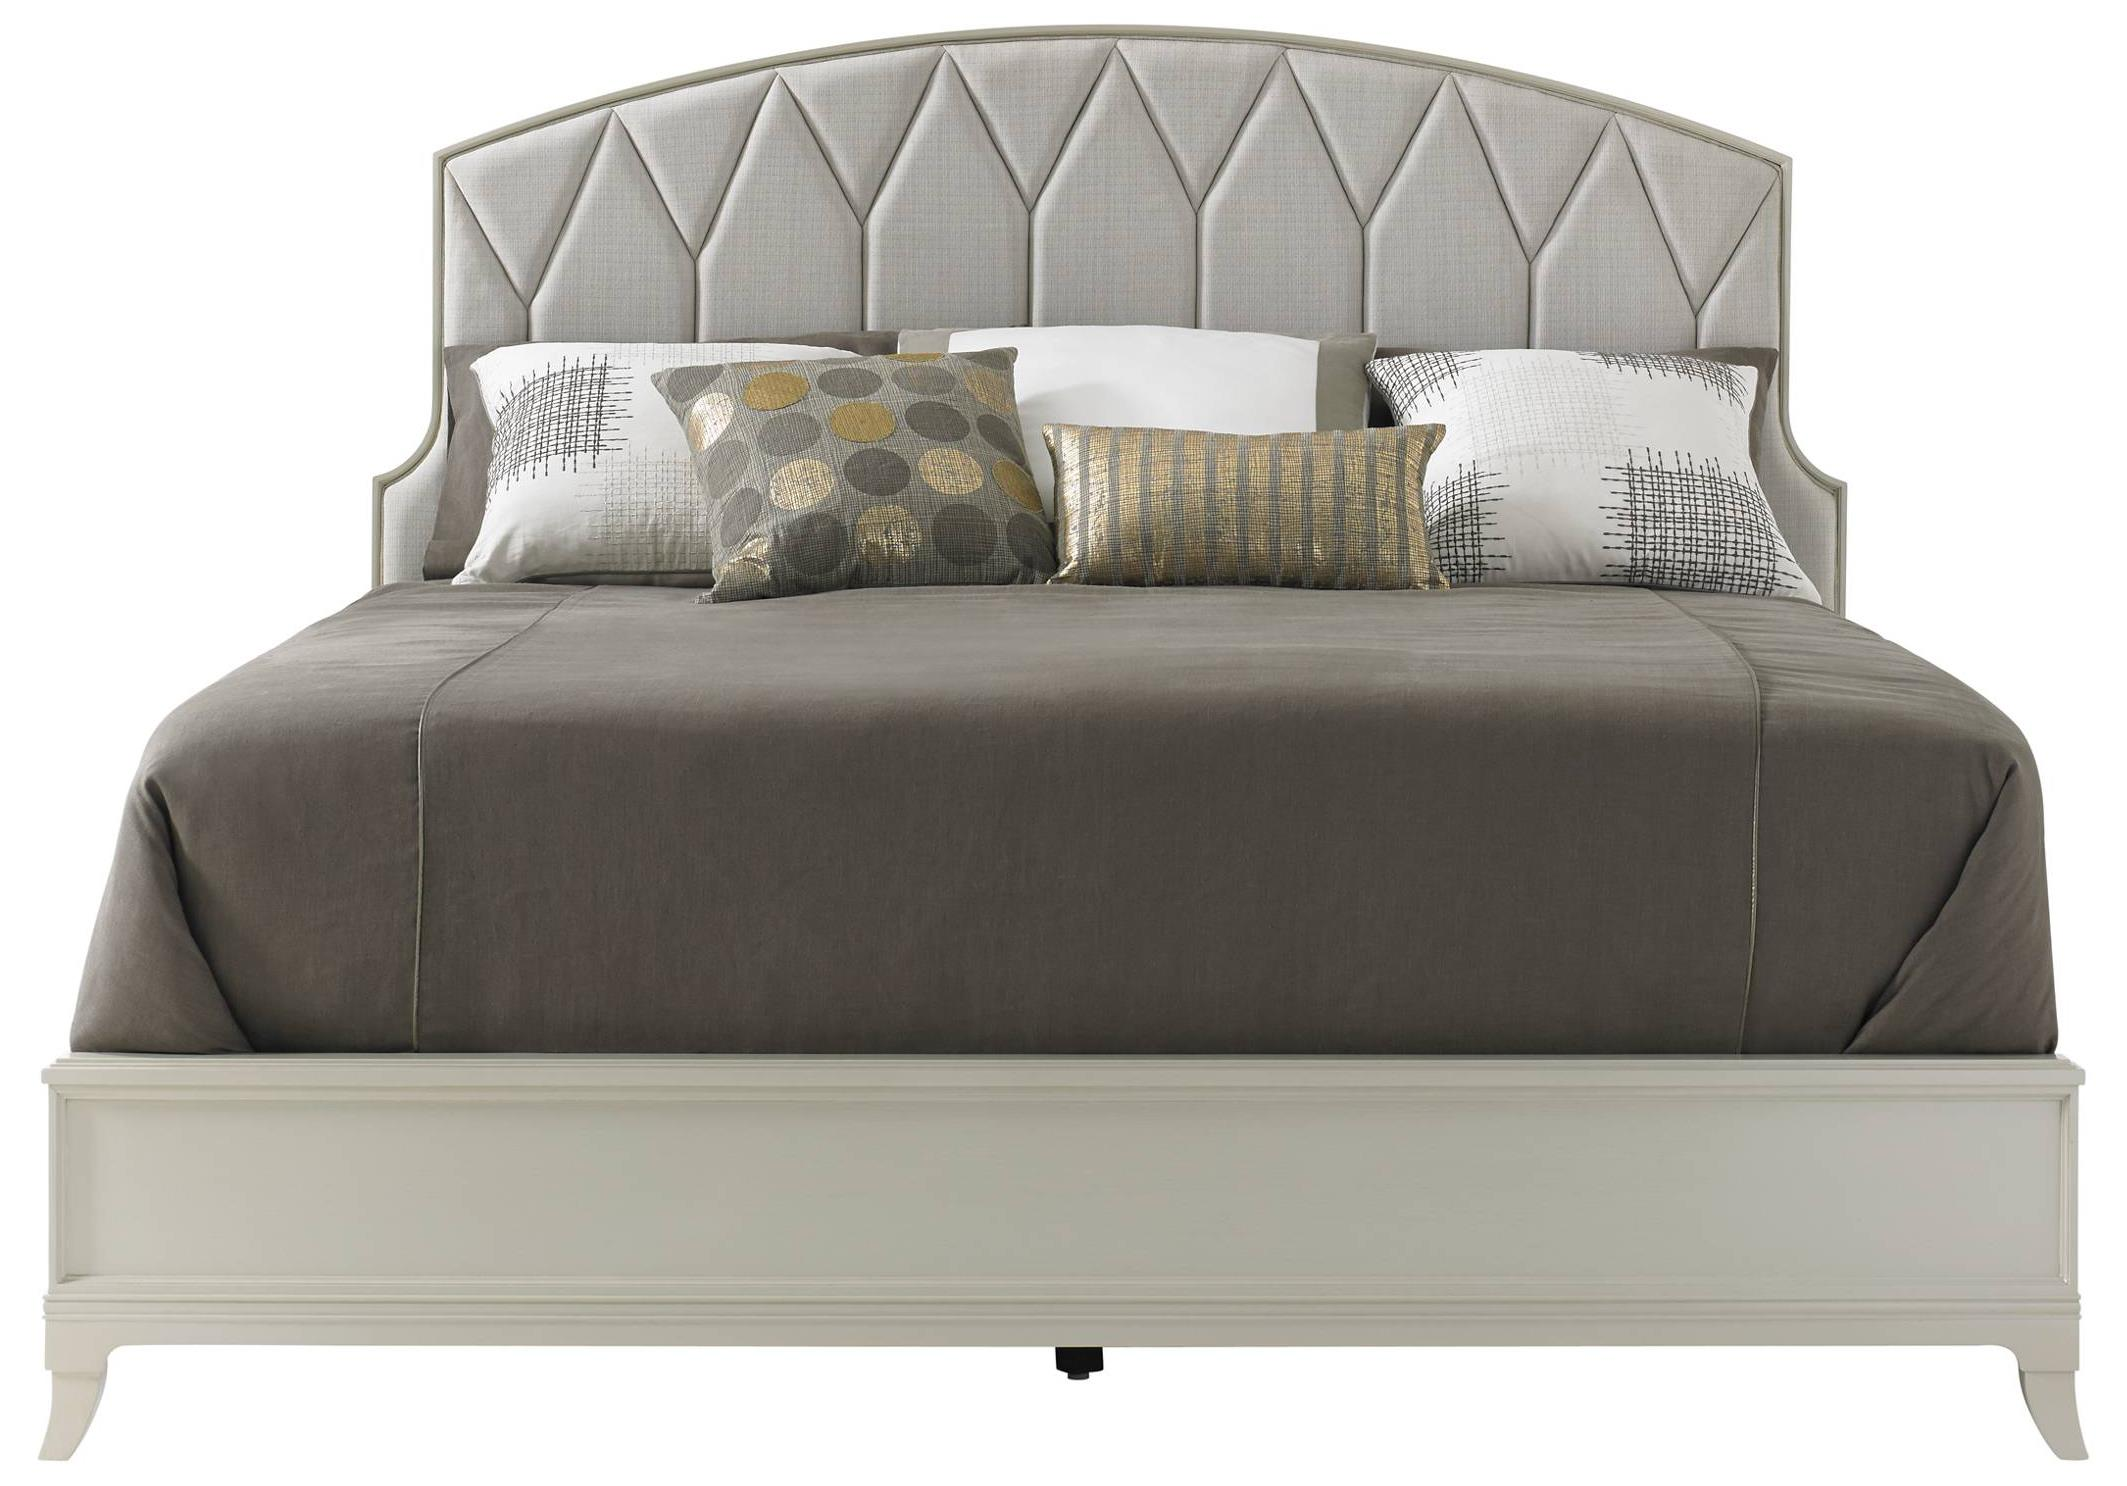 Stanley Furniture Crestaire King Ladera Bed - Item Number: 436-23-47